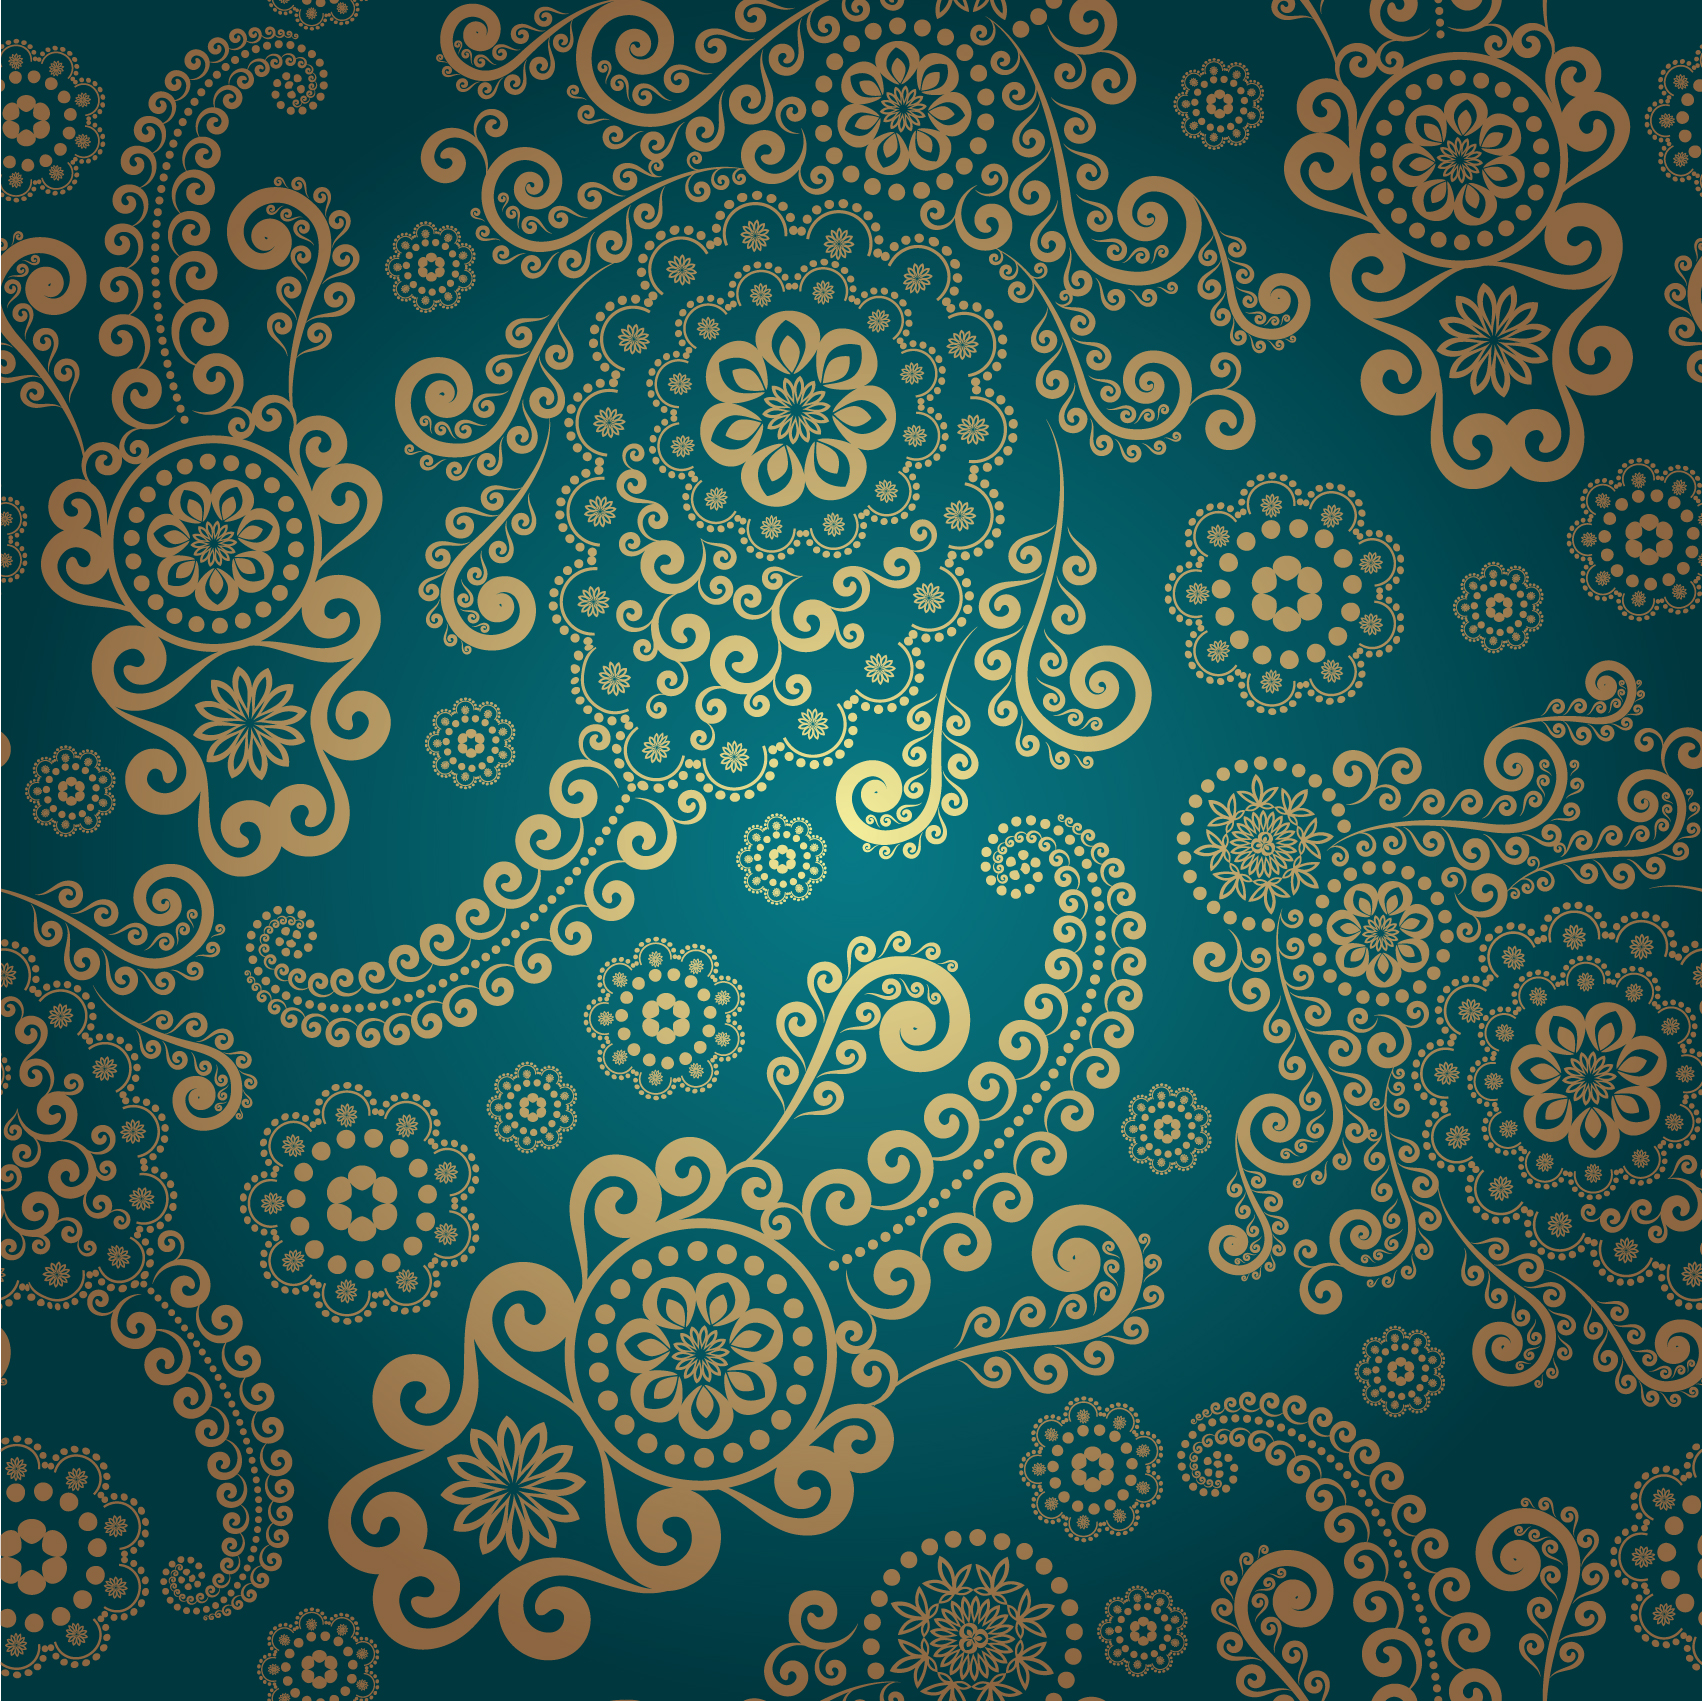 Free Vector Pattern Downloads